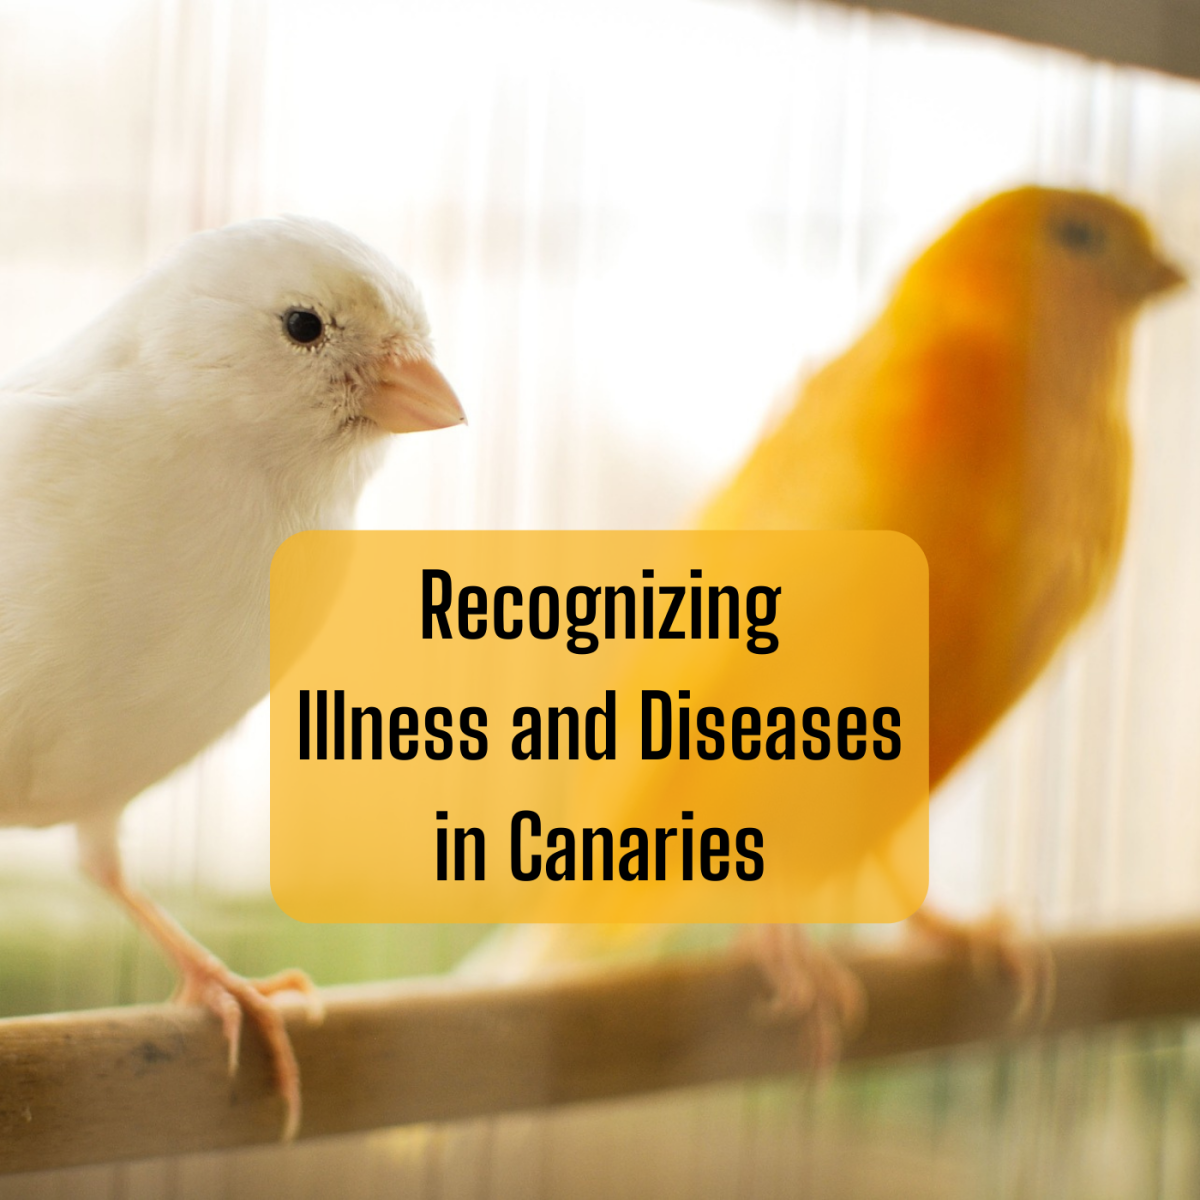 Learn about the main categories of disease in canaries and how to recognize the symptoms.